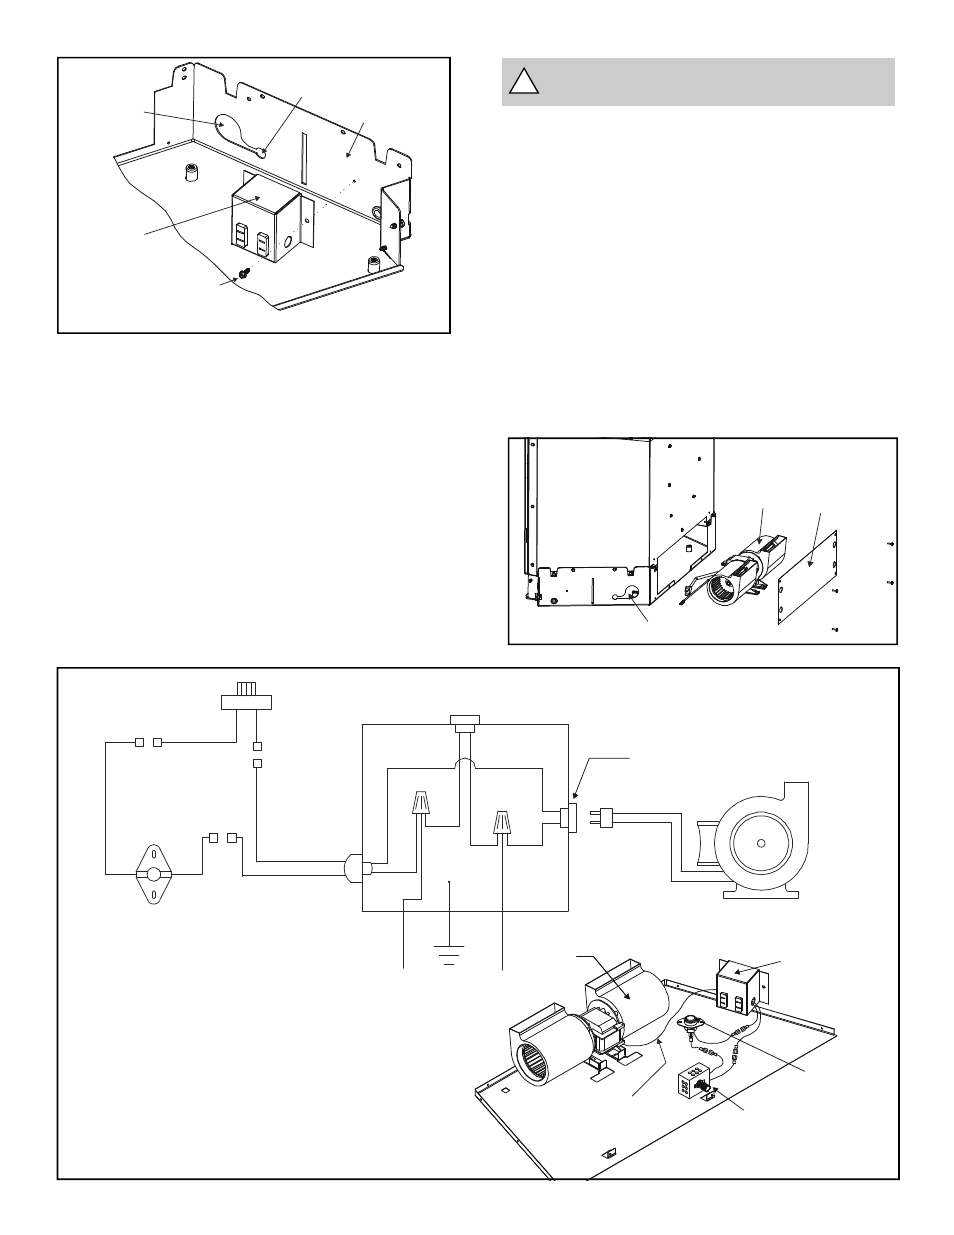 Figure 10. fan wiring diagram, Warning: must use the cord supplied with the  j-box, Figure 11 | Heat & Glo Fireplace HEAT-N-GLO FB-IN User Manual | Page  20 / ...